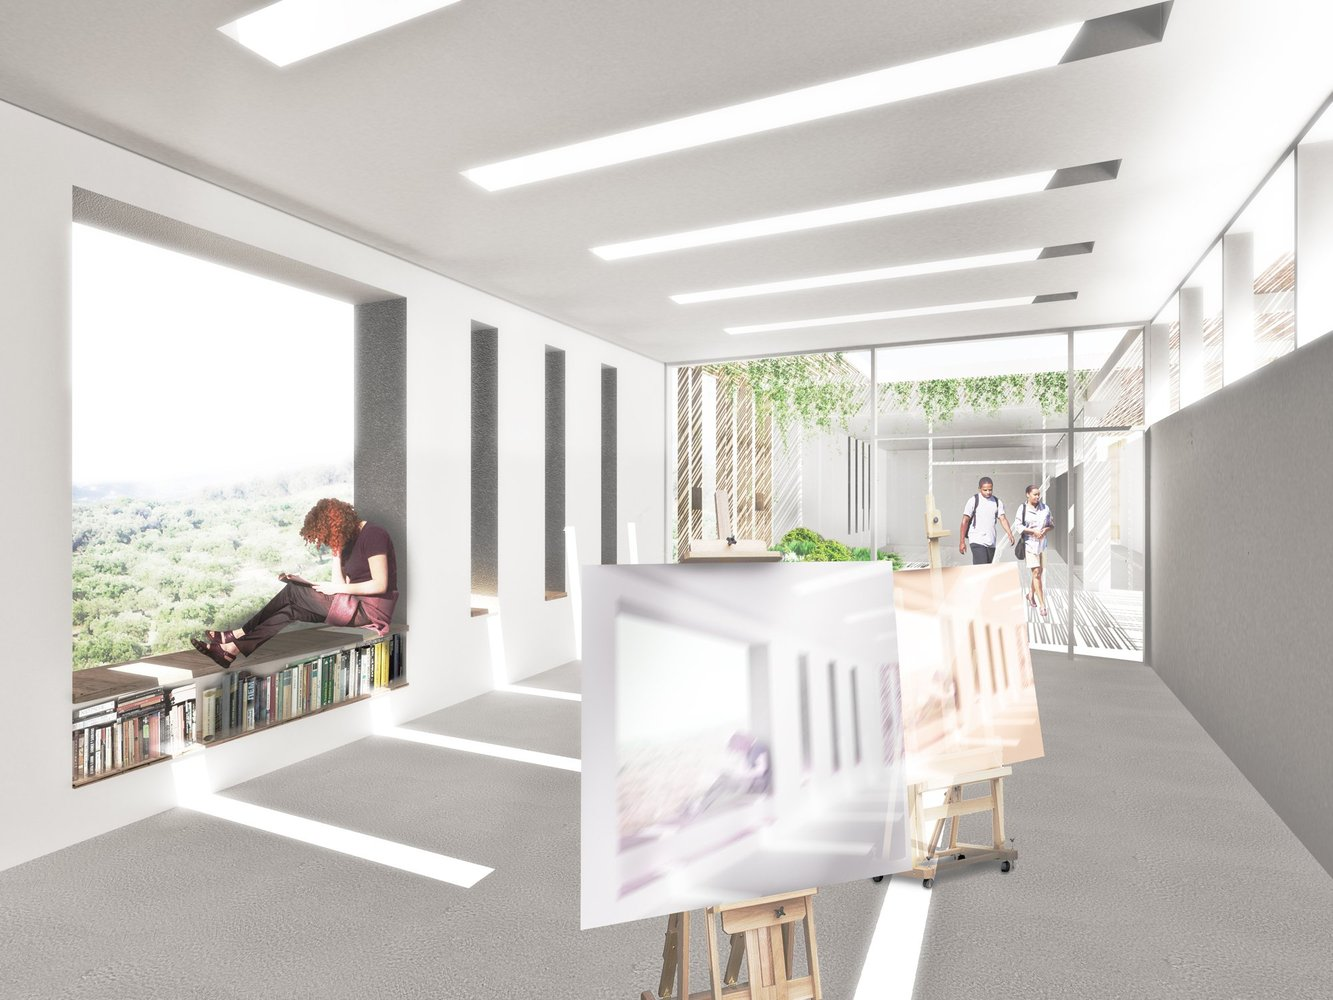 Gallery of Innovative Bioclimatic European School Third Prize ...